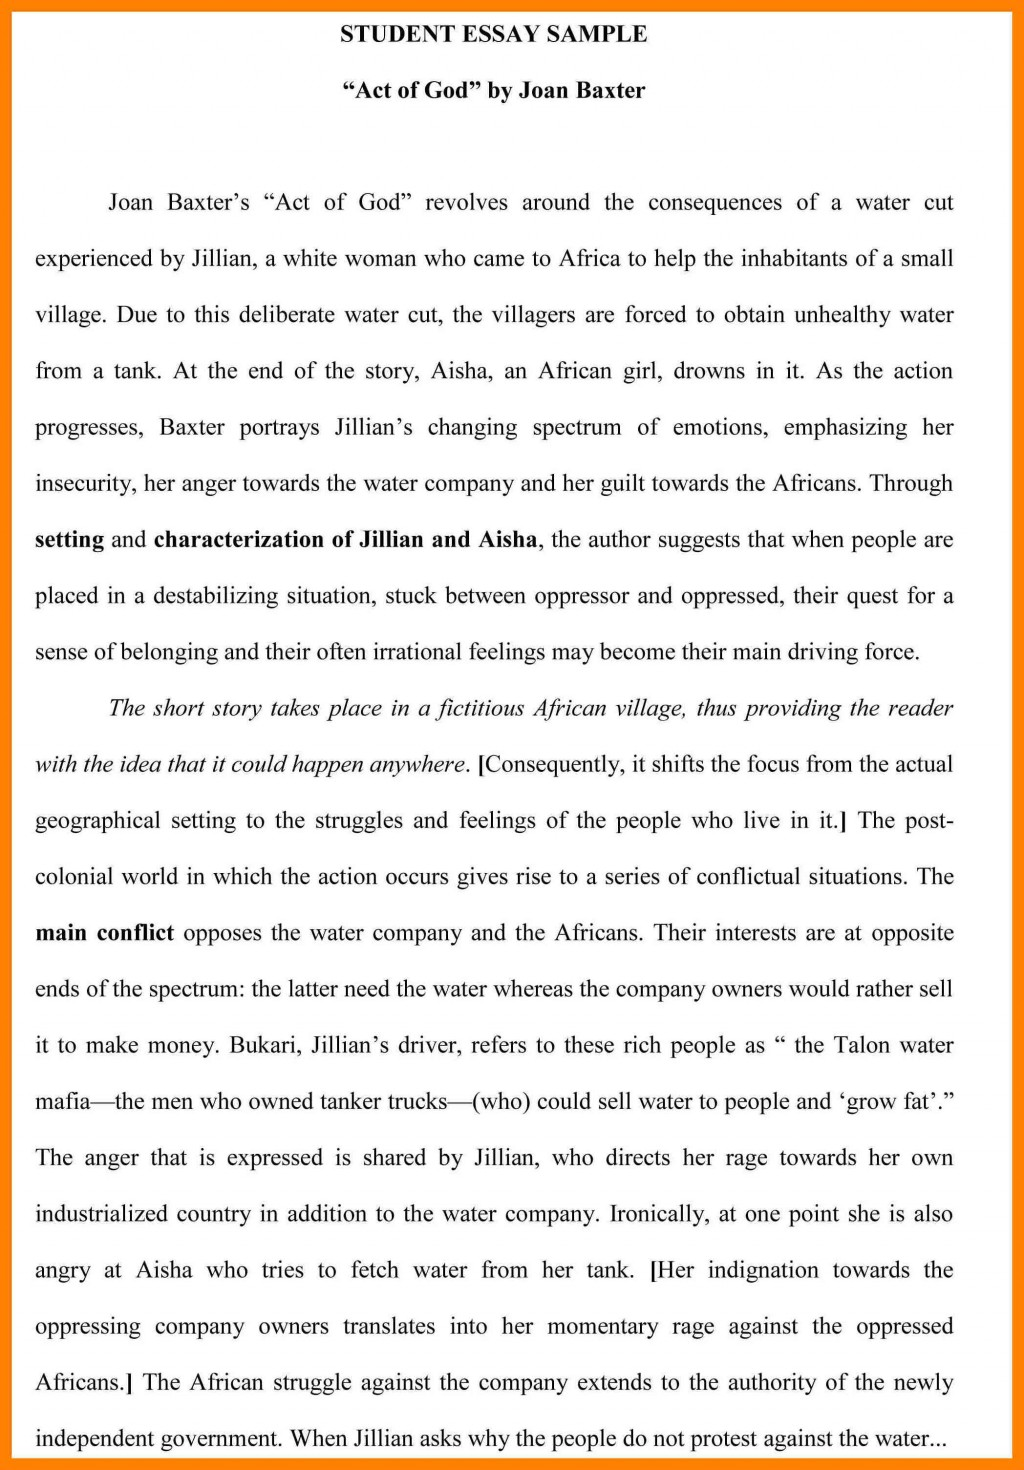 004 Essay Example How To Write An Act Sample Math Test Elmifermetures Com Ideas Collection Awesome Of Livesto Essays Pdf New Topics Dreaded 2018 Template Large